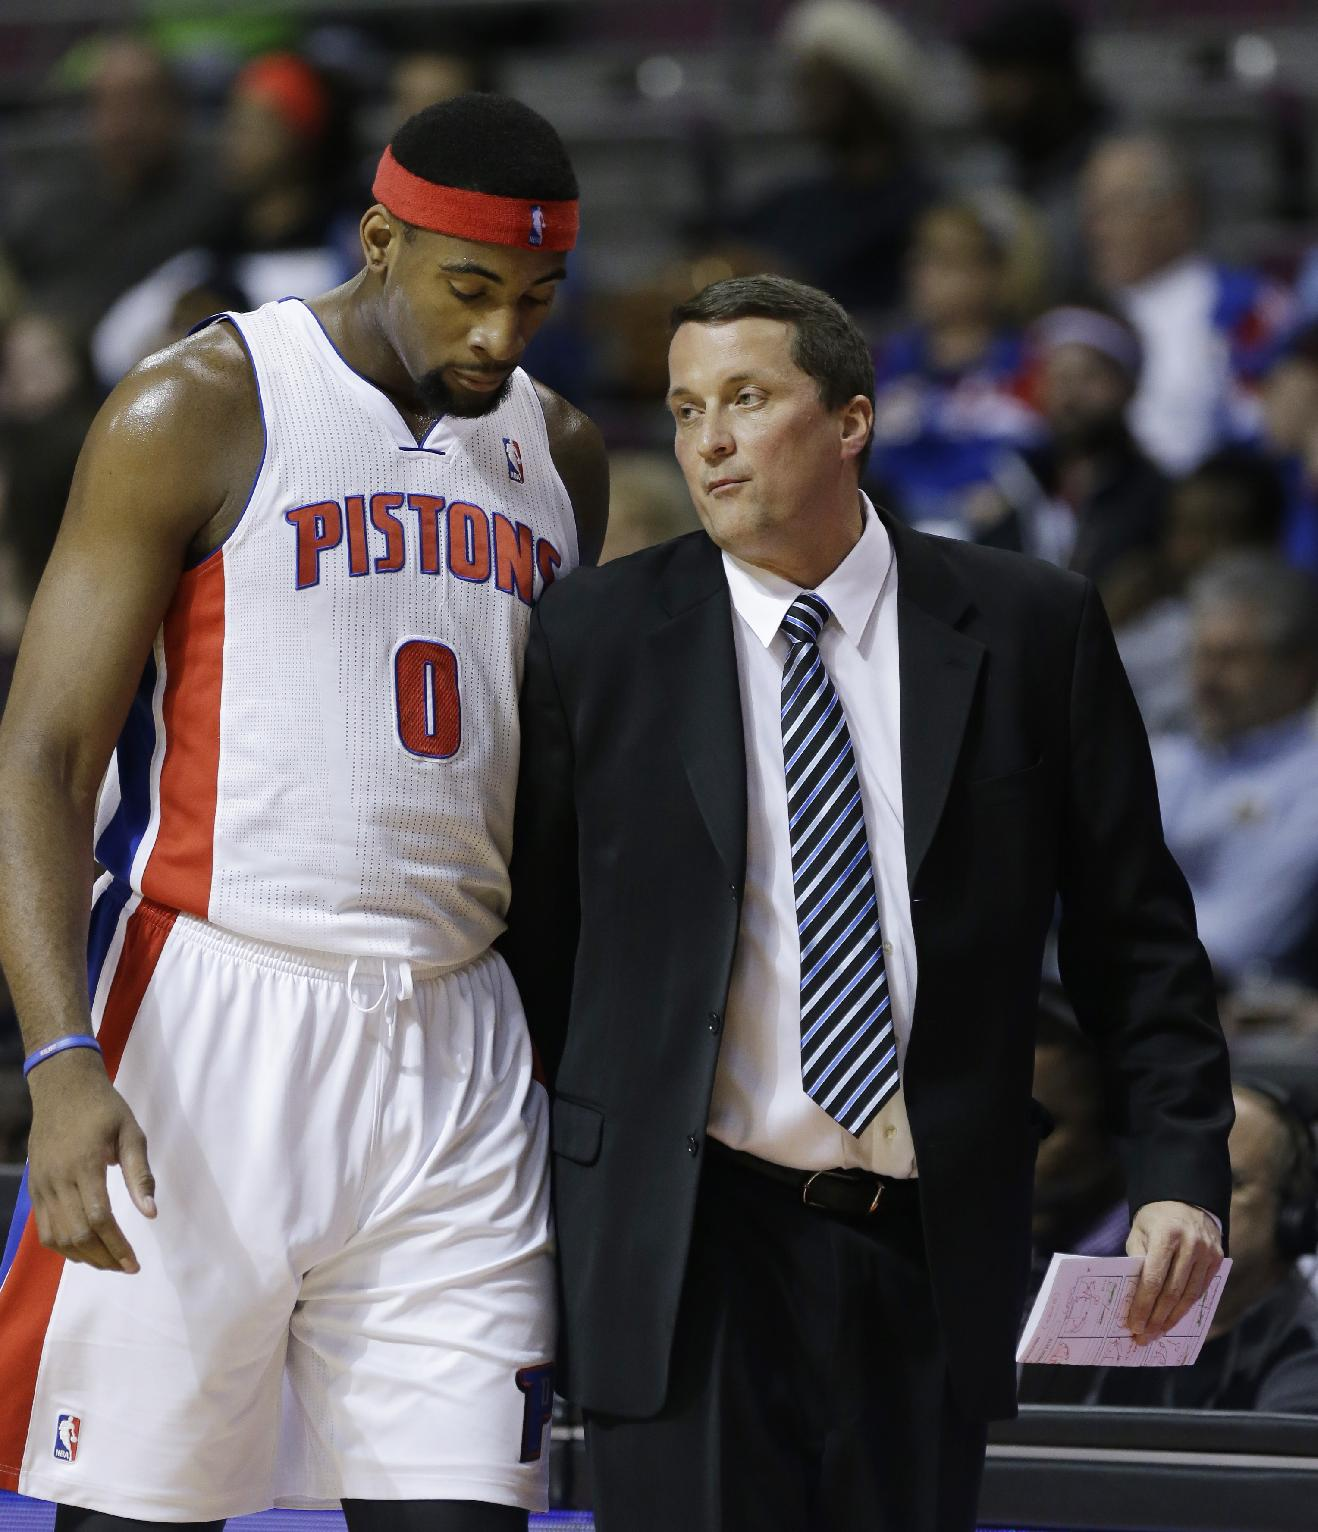 Detroit Pistons center Andre Drummond (0) talks with interim head coach John Loyer during the first half of an NBA basketball game against the San Antonio Spurs in Auburn Hills, Mich., Monday, Feb. 10, 2014